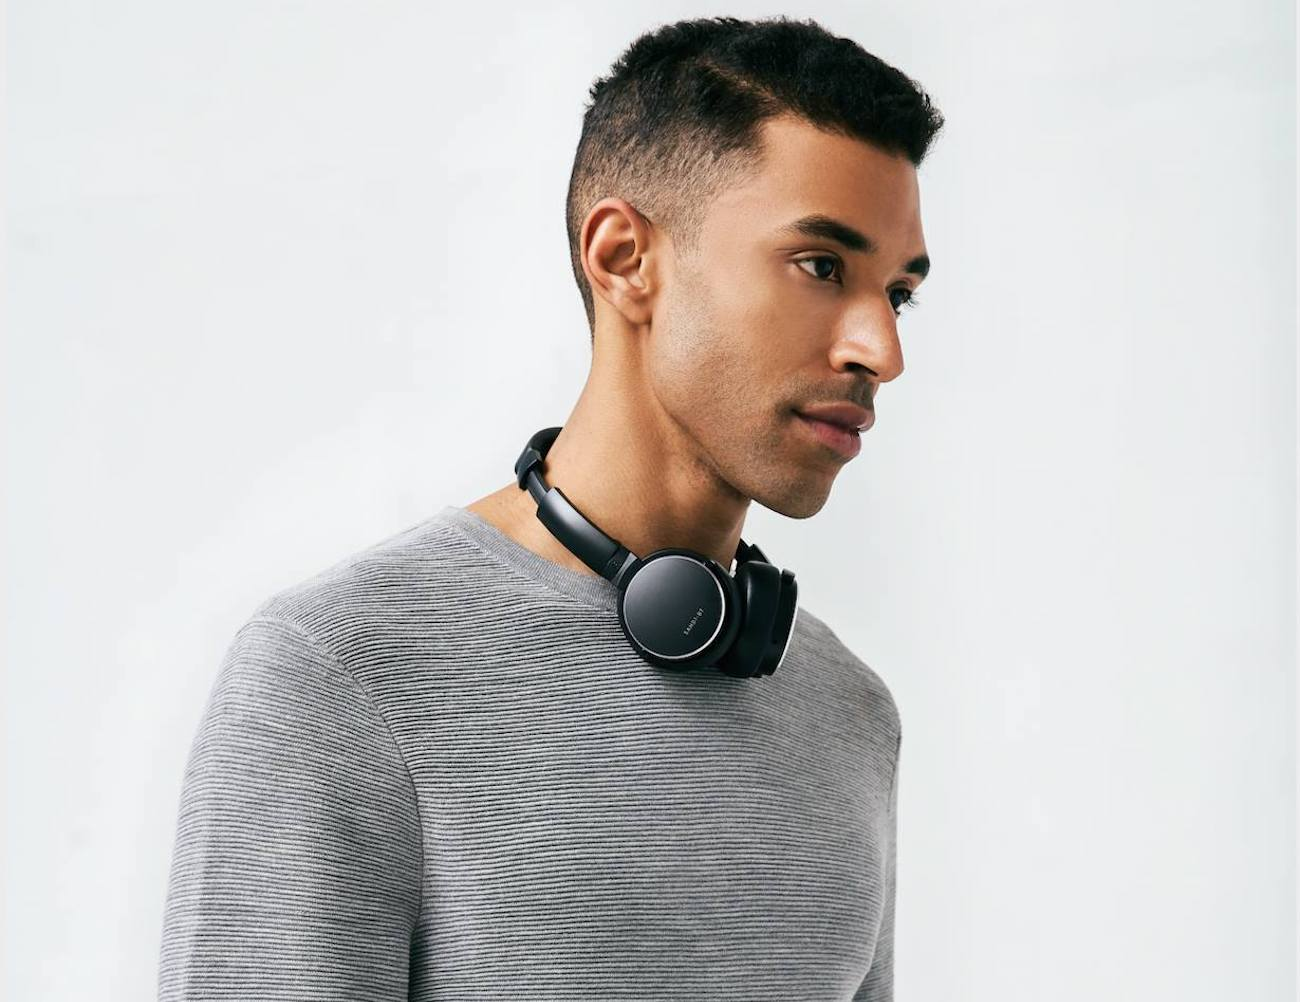 BT One On-Ear Wireless Bluetooth Headphones provide a stylish listening experience